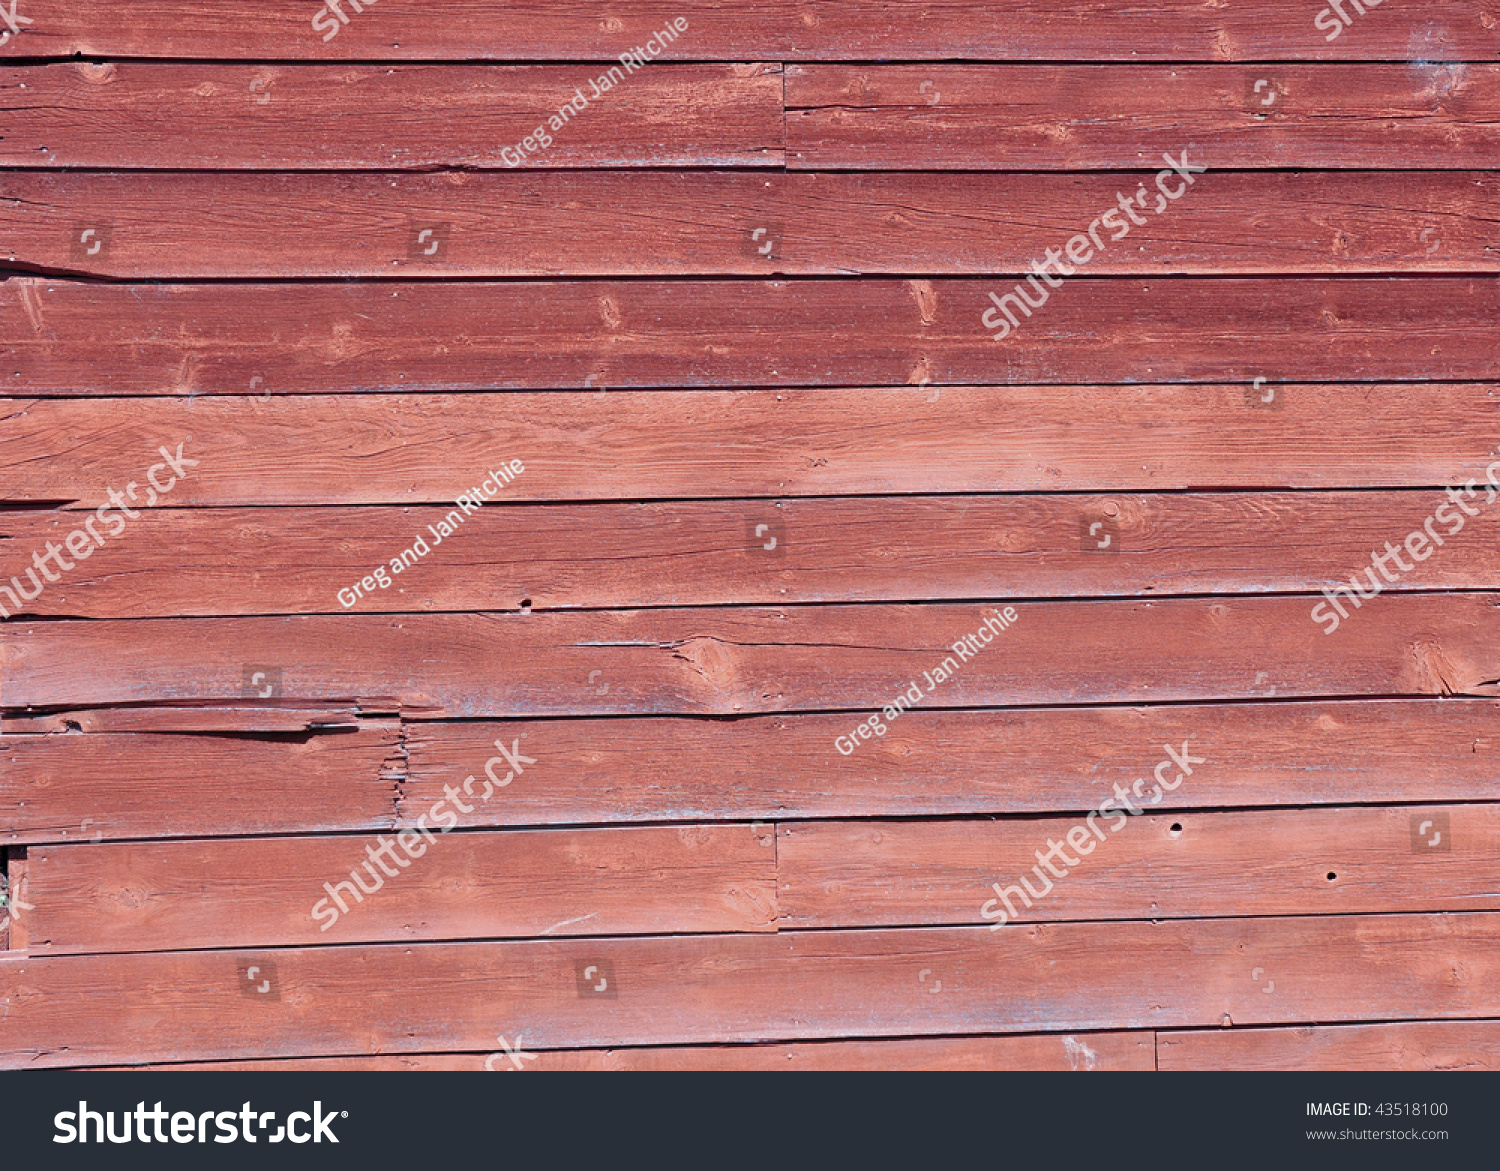 Exterior background stock photo 43518100 shutterstock for Exterior background